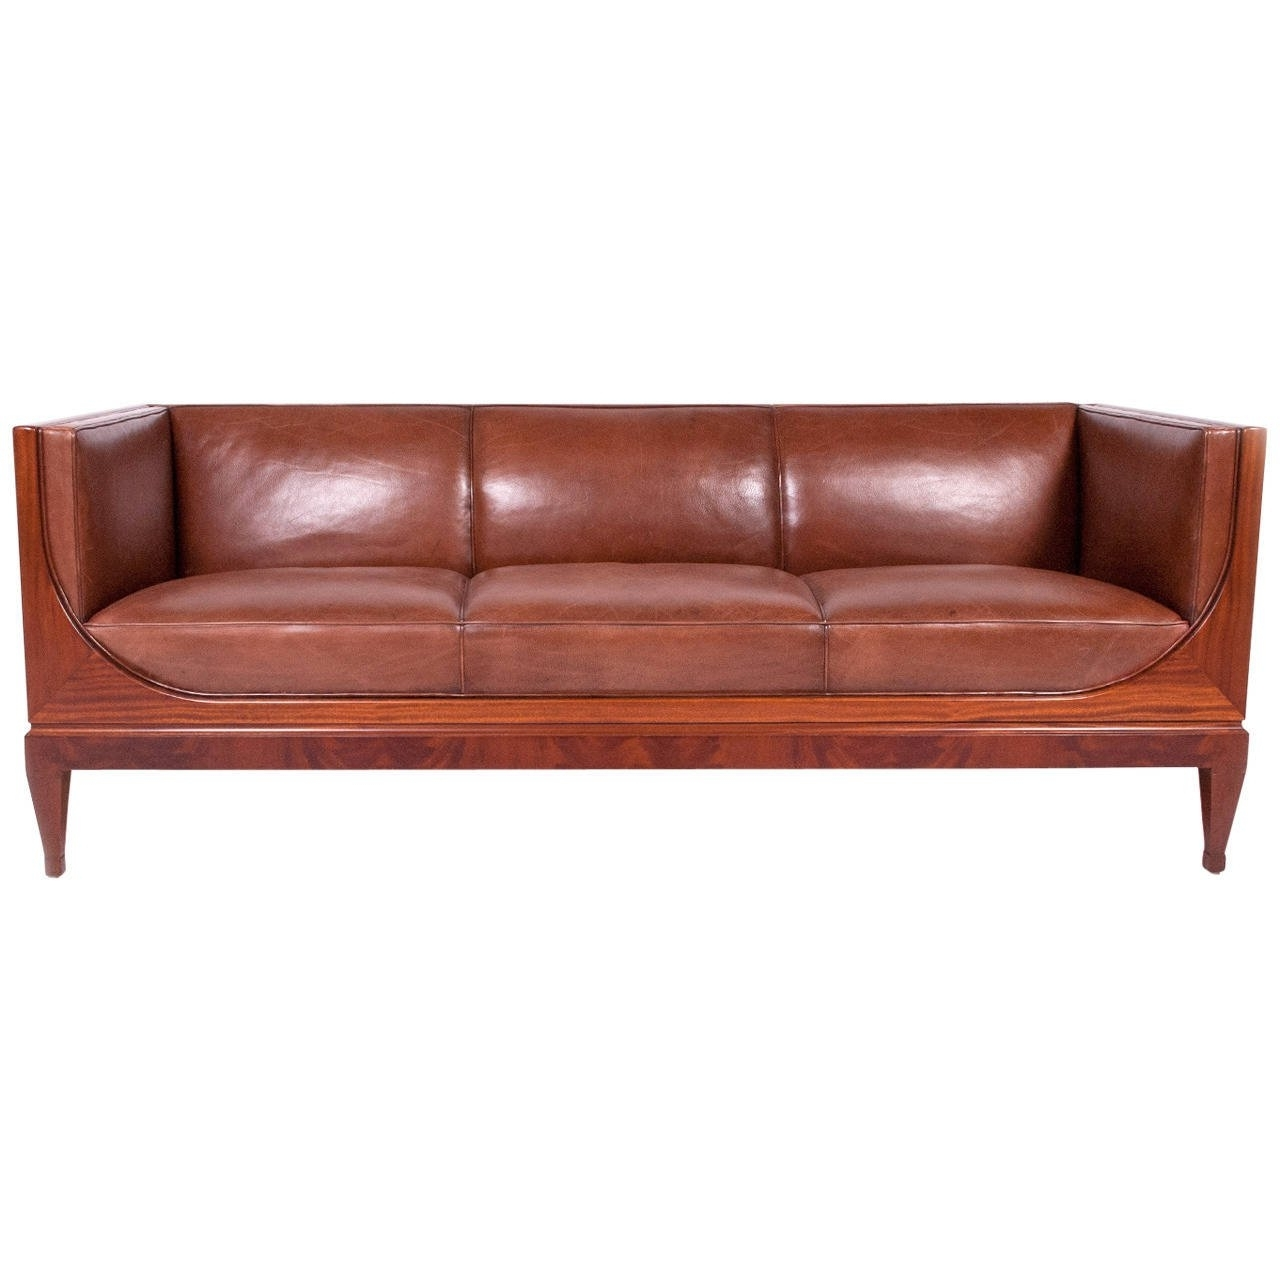 Most Recent 1930S Sofas – 122 For Sale At 1Stdibs For 1930S Sofas (View 14 of 20)